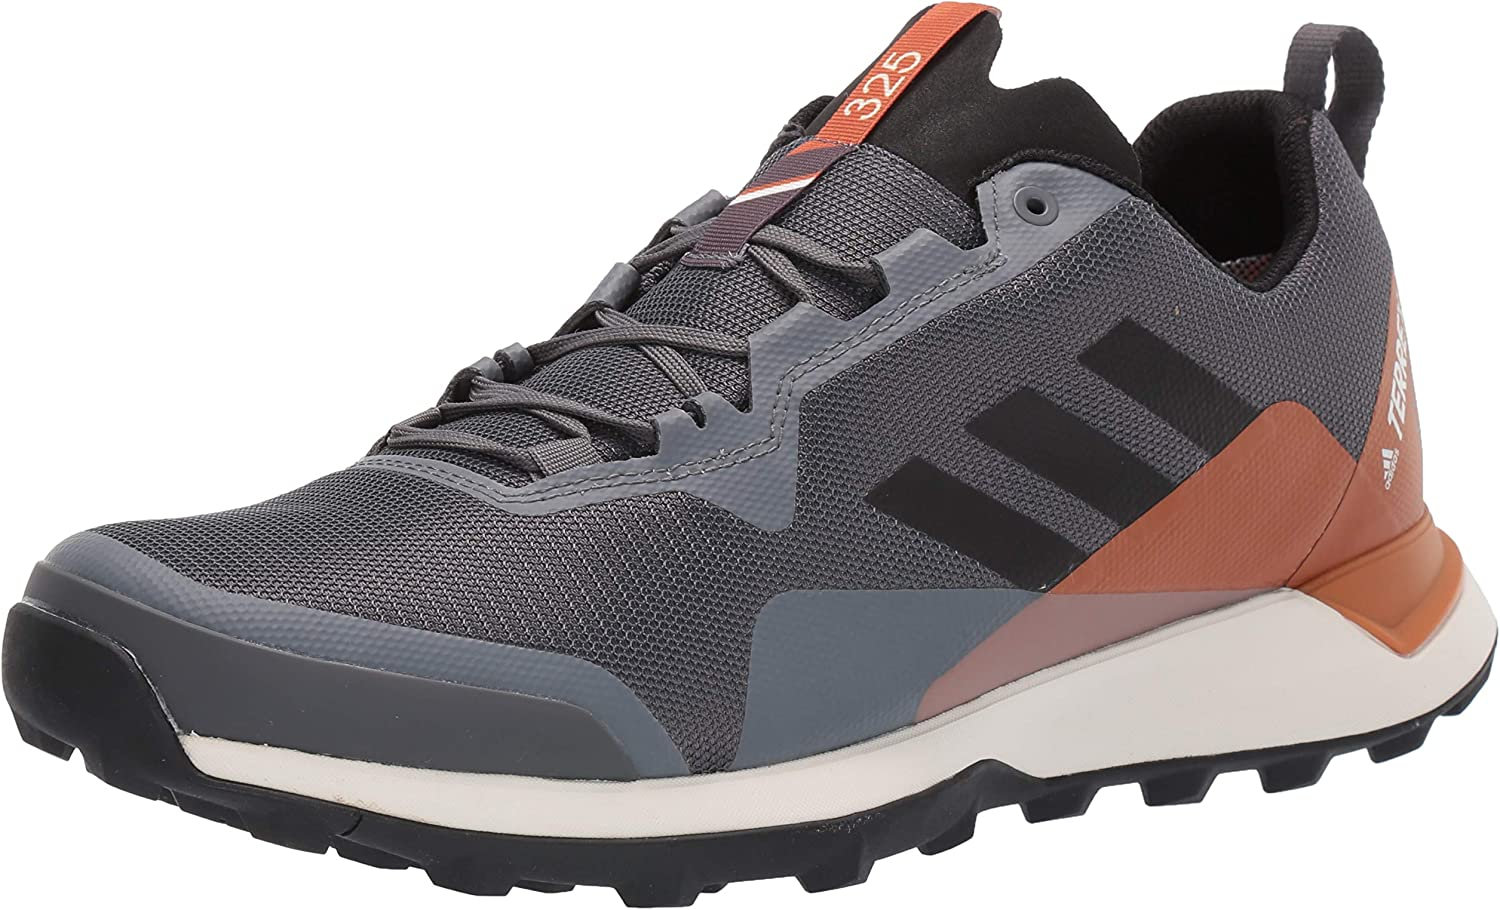 adidas outdoor Men's Terrex CMTK GTX Trail Running Shoe, Grey Five/Black/TECH Copper 6.5 D US